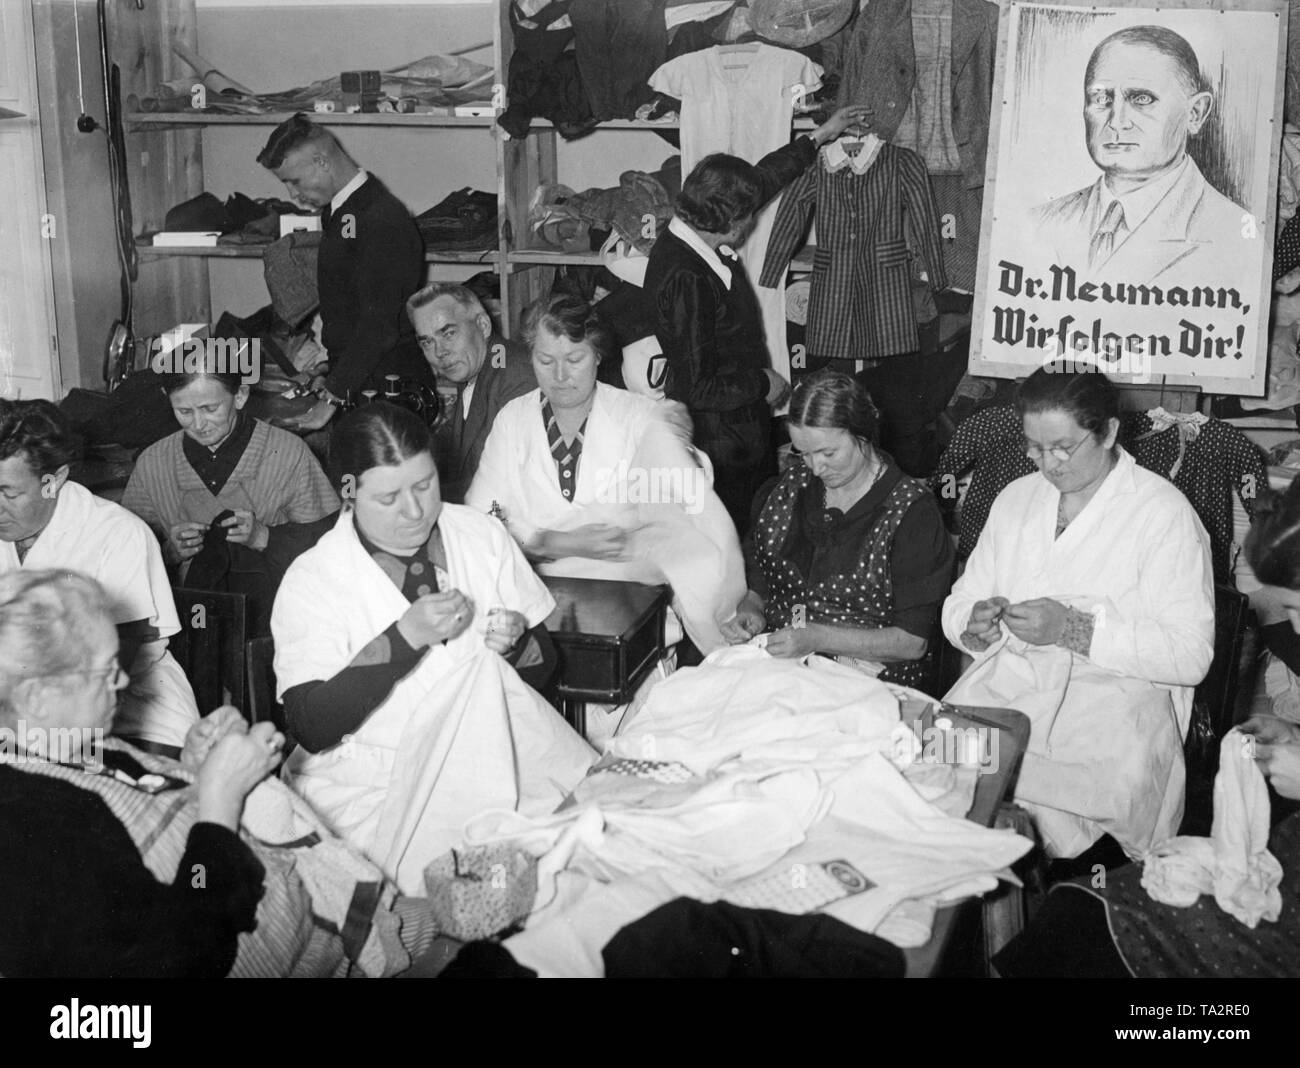 "Women and girls help in the tailoring rooms of the memellaendischen Winterhilfswerk. On the right a portrait of Ernst Neumann, beneath the slogan ""Dr. Neumann, we follow you!"" Stock Photo"